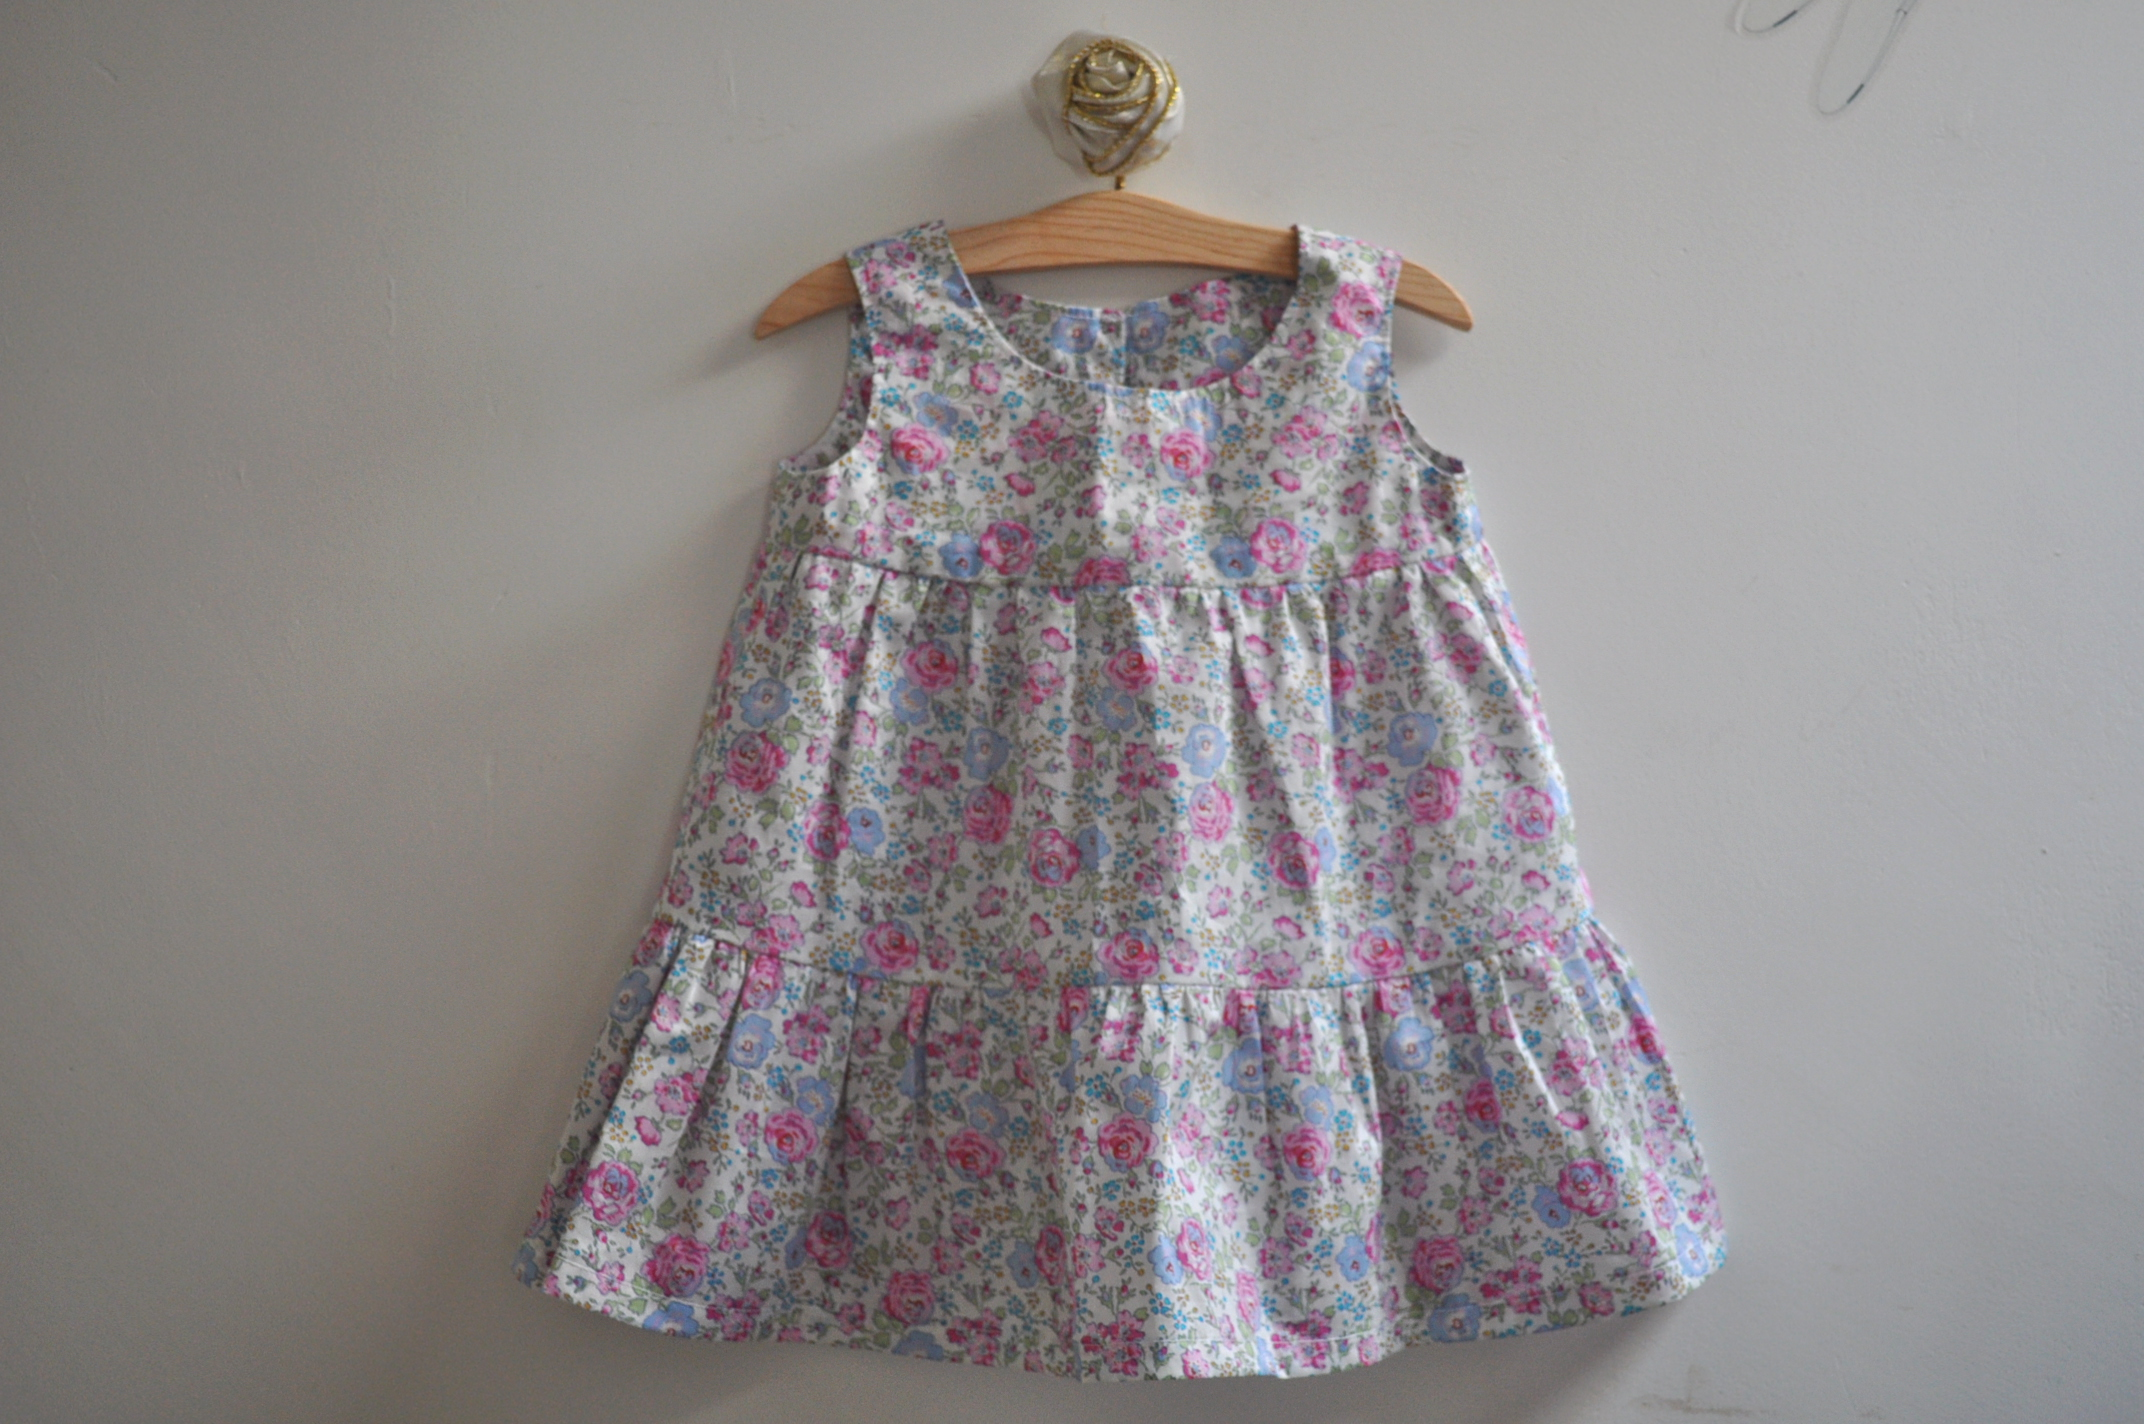 Baby Girl Dress with Bloomers Liberty Tana Lawn by Tialys on Zibbet